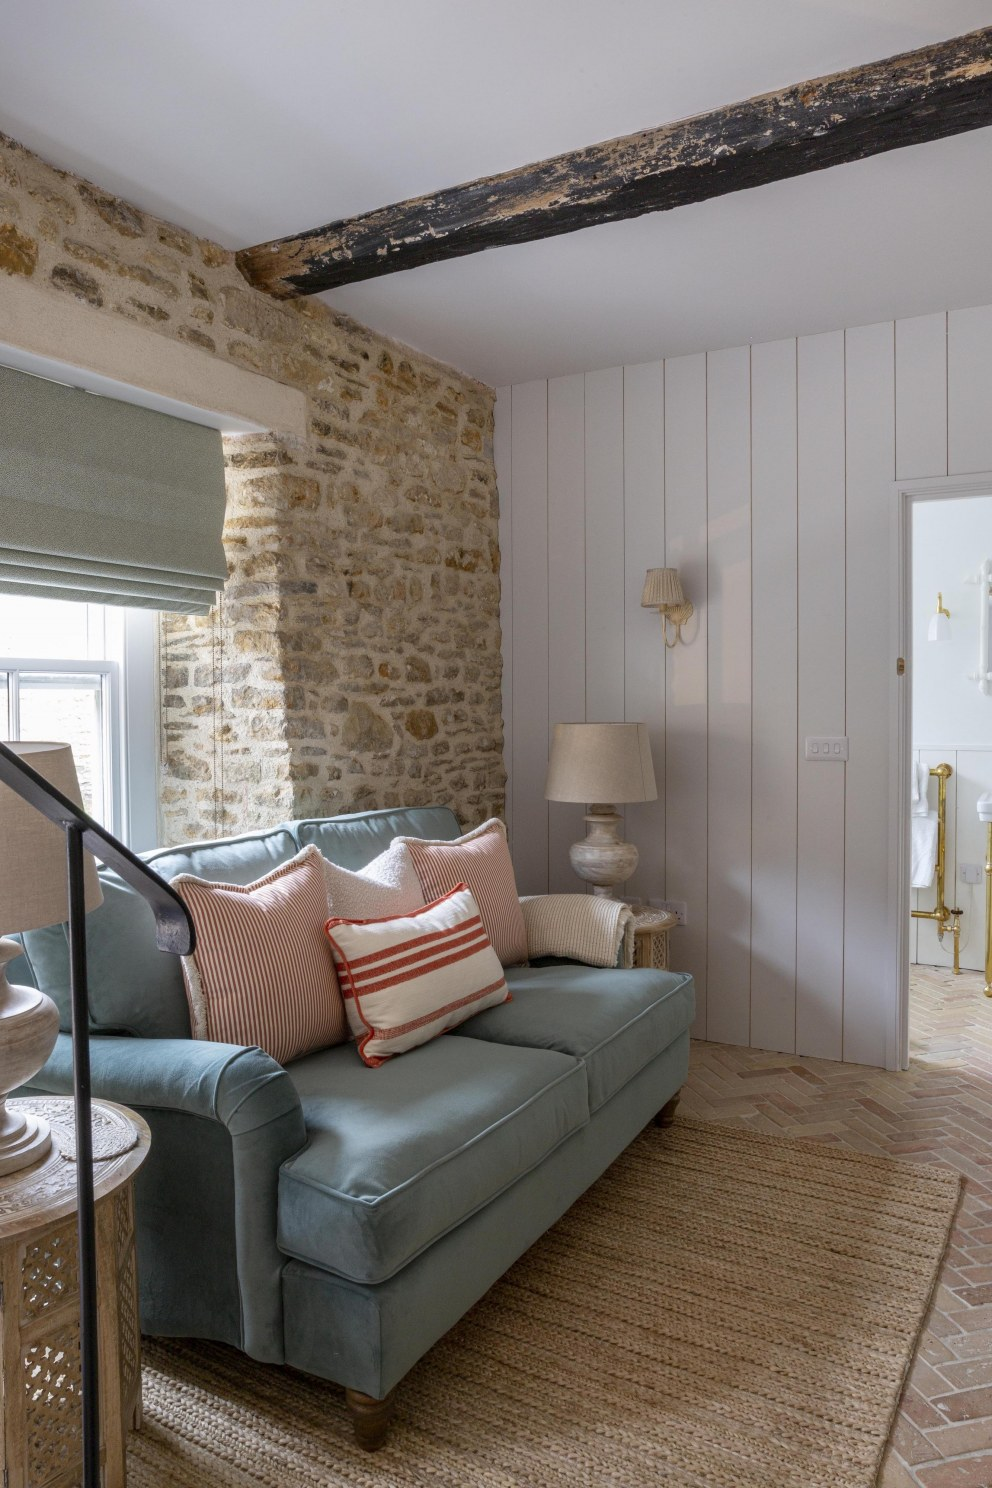 The Cottages, Number One Bruton | A cosy corner | Interior Designers